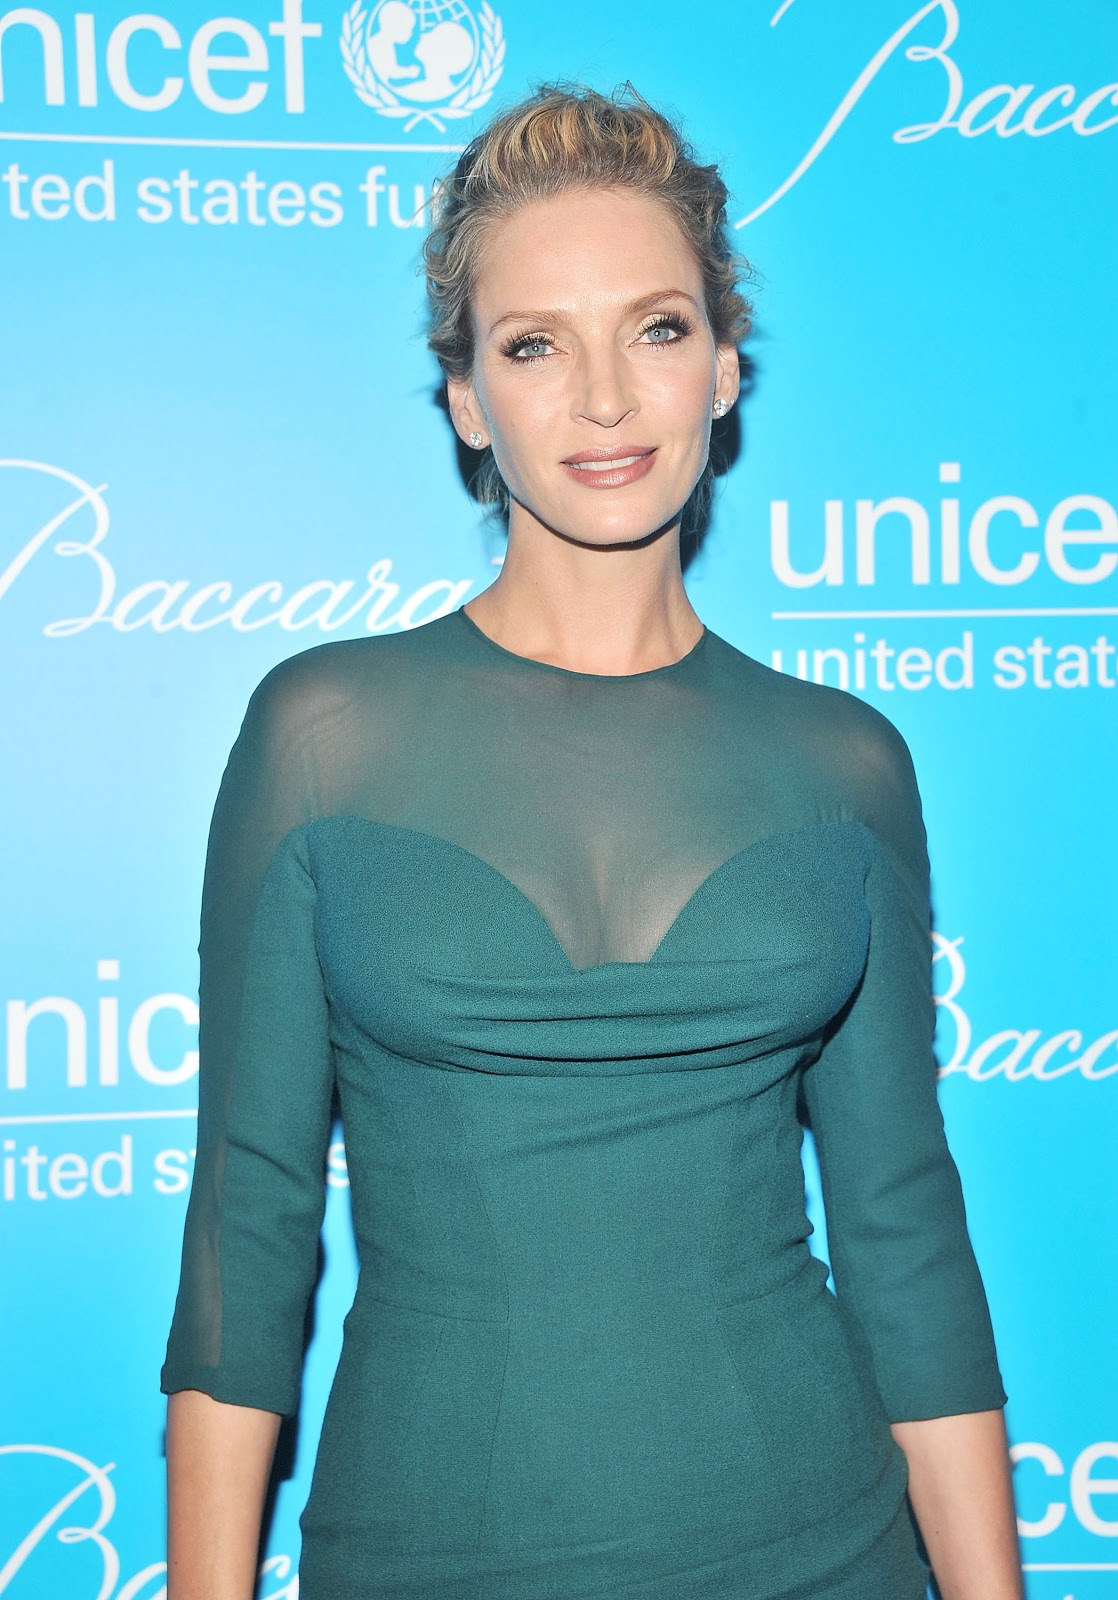 Naked Pictures Of Uma Thurman